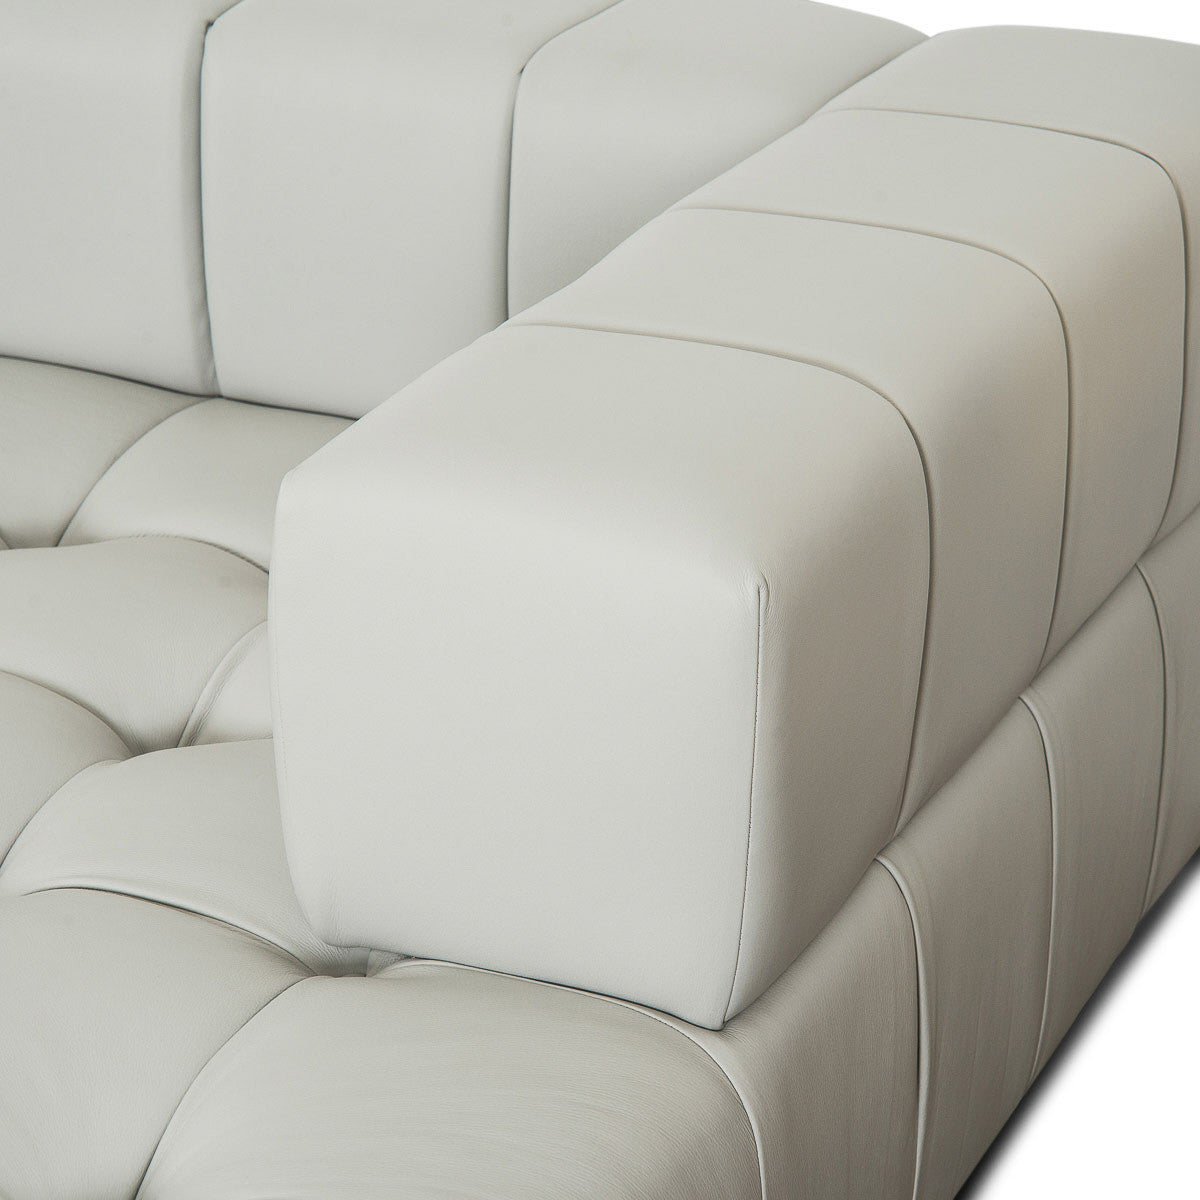 Delano Modular U-Sectional in Genuine Leather - ModShop1.com